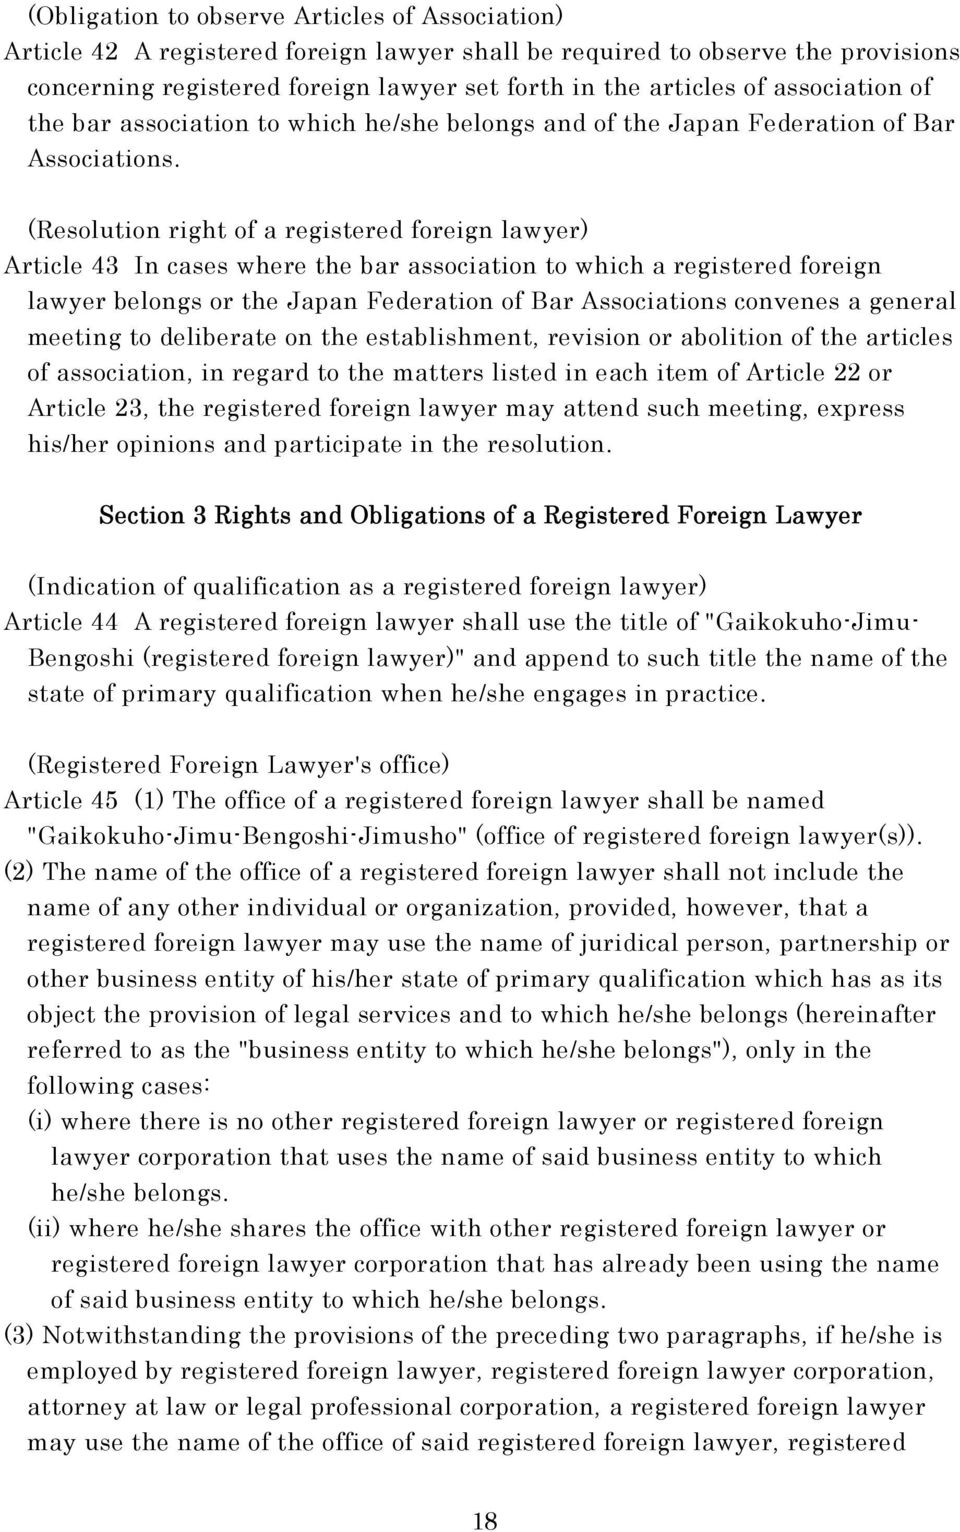 (Resolution right of a registered foreign lawyer) Article 43 In cases where the bar association to which a registered foreign lawyer belongs or the Japan Federation of Bar Associations convenes a